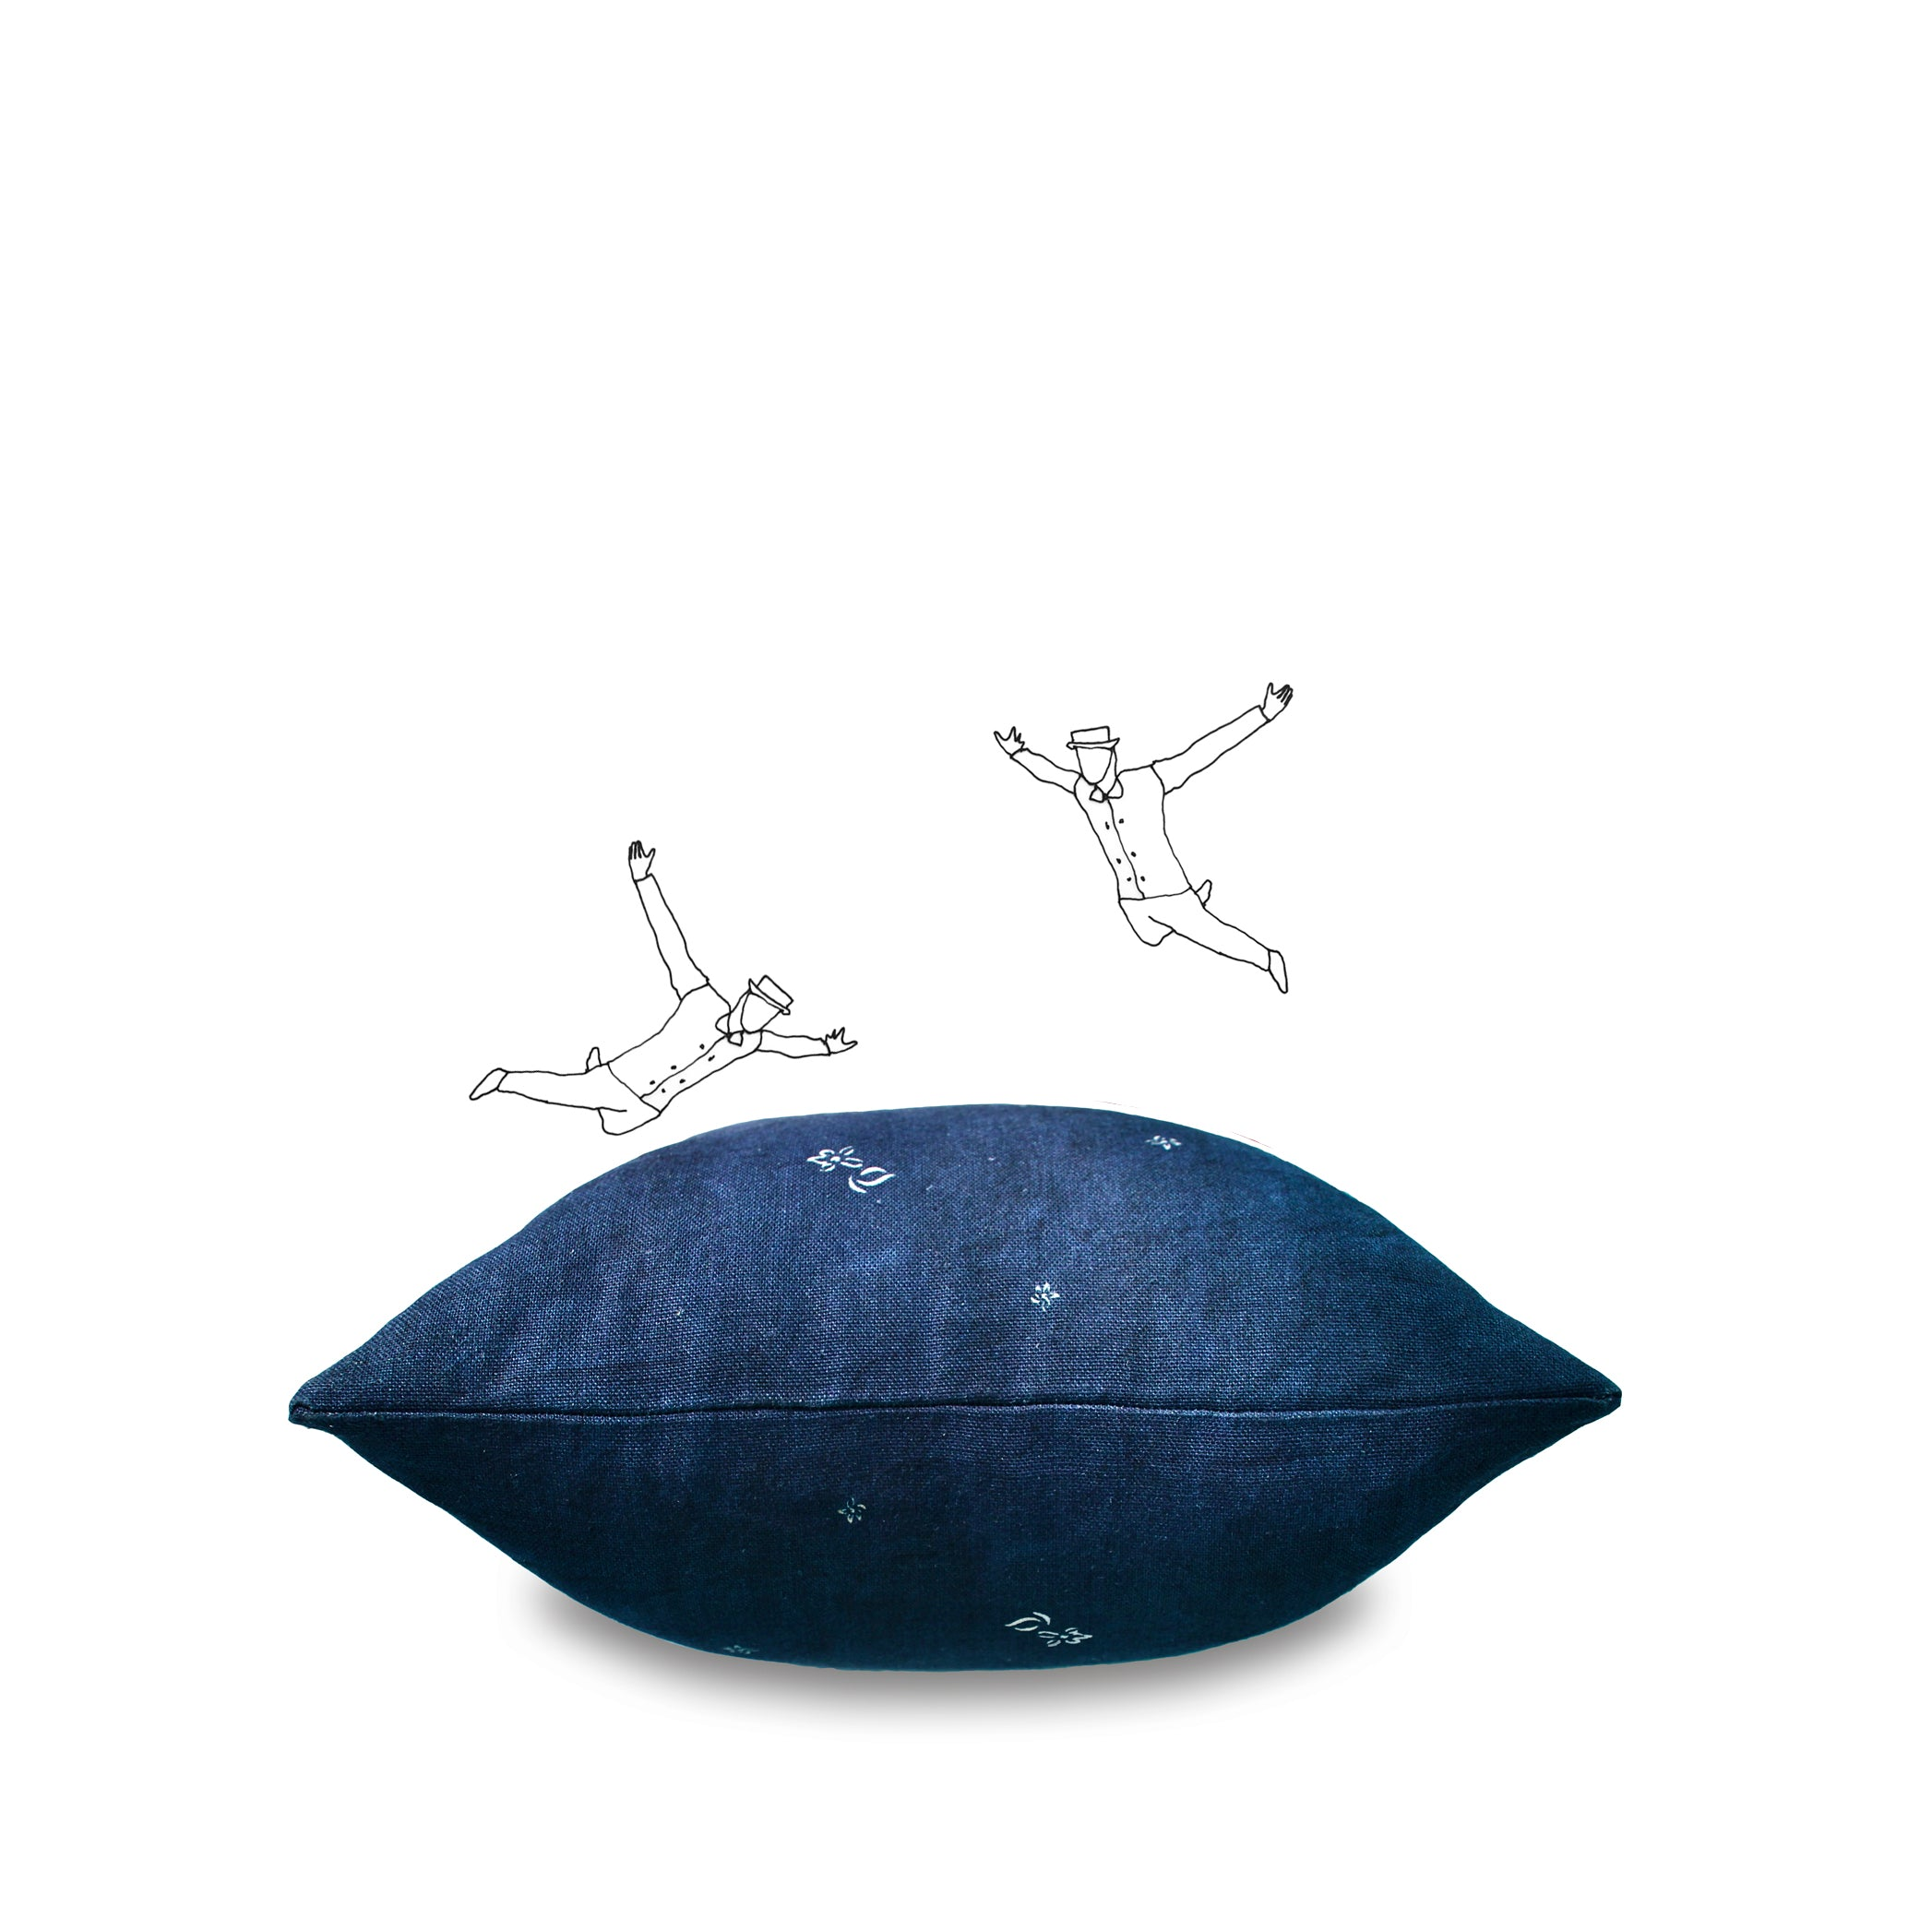 Heavy Linen Falling Flower Cushion in Full Field Midnight Blue, 50cm x 30cm